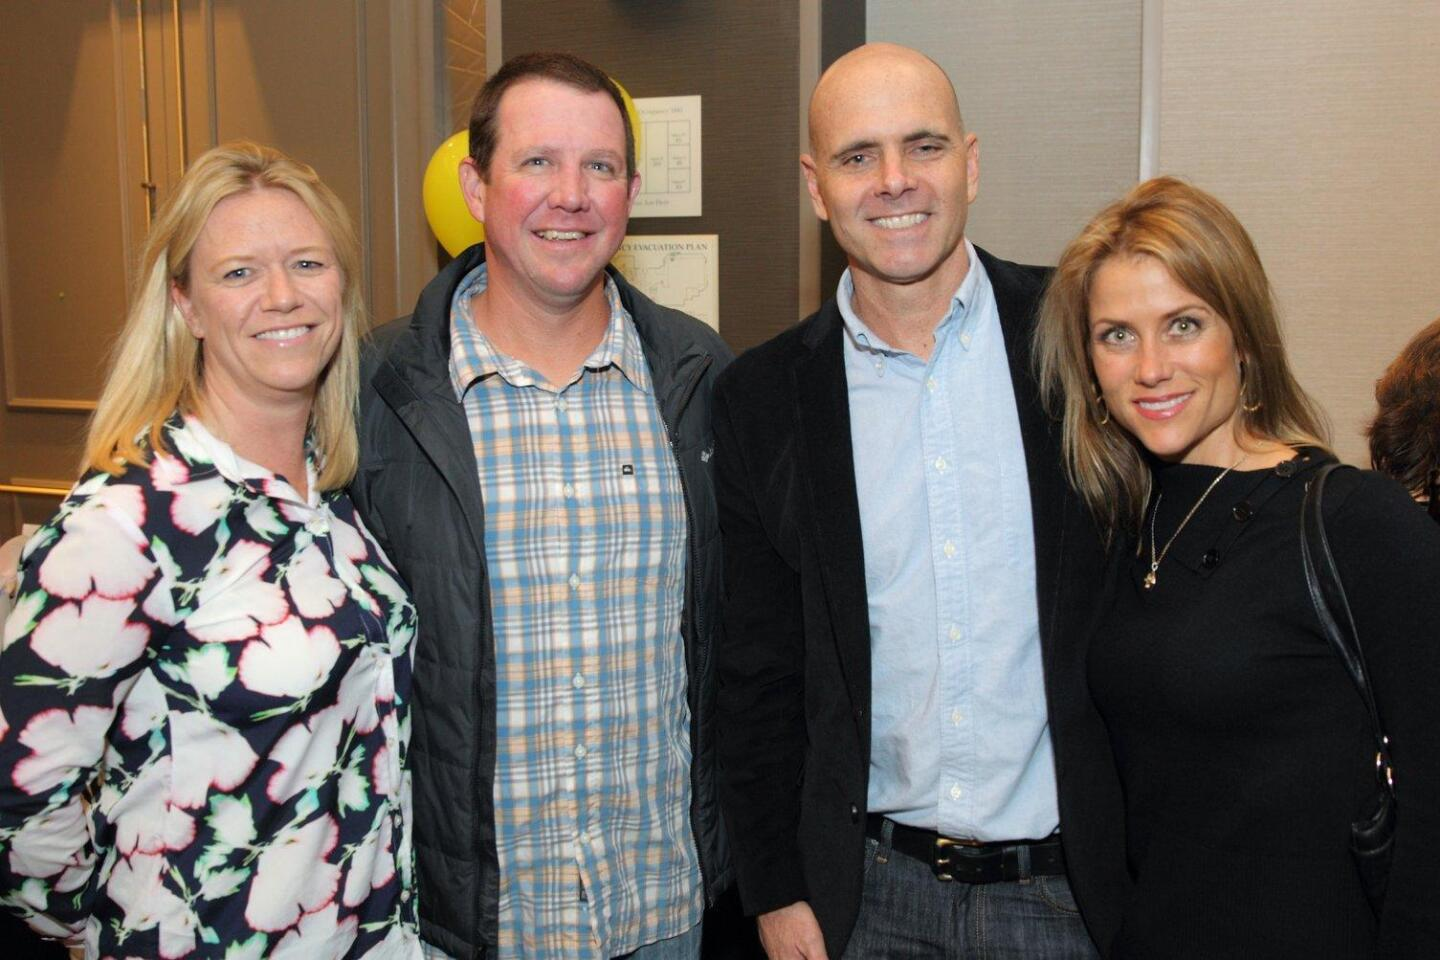 Janicke and Chad Swanson, Chris and Amy Rosskopf